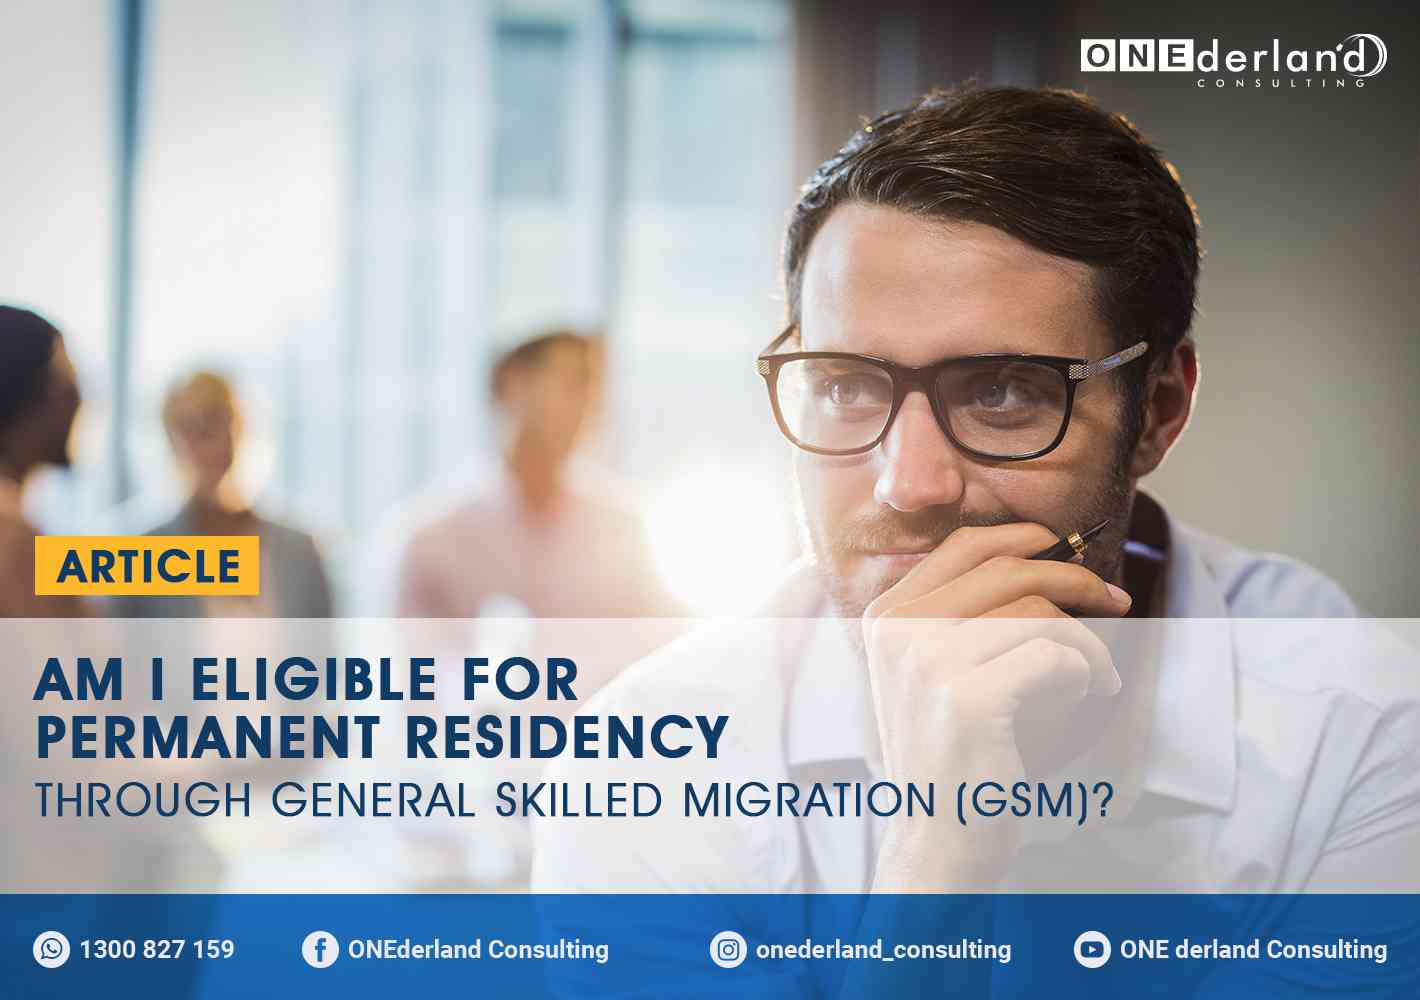 Am I Eligible For Permanent Residency Through General Skilled Migration (GSM)